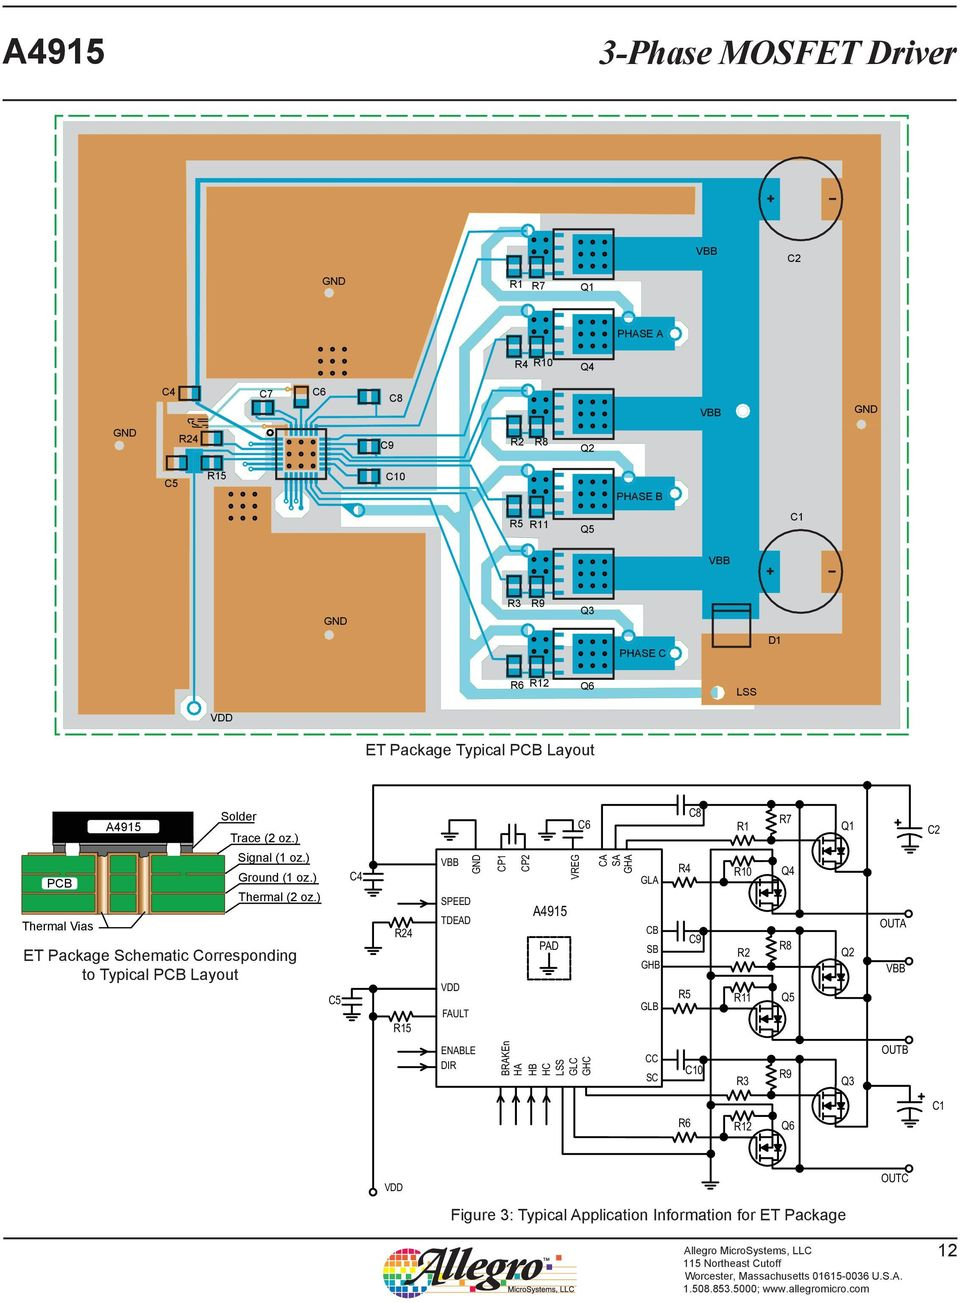 ) ET Package Schematic Corresponding to Typical PCB Layout C5 C4 R24 R15 SPEED TDEAD FAULT CP1 CP2 A4915 PAD VREG C6 CA SA GHA GLA CB SB GHB GLB